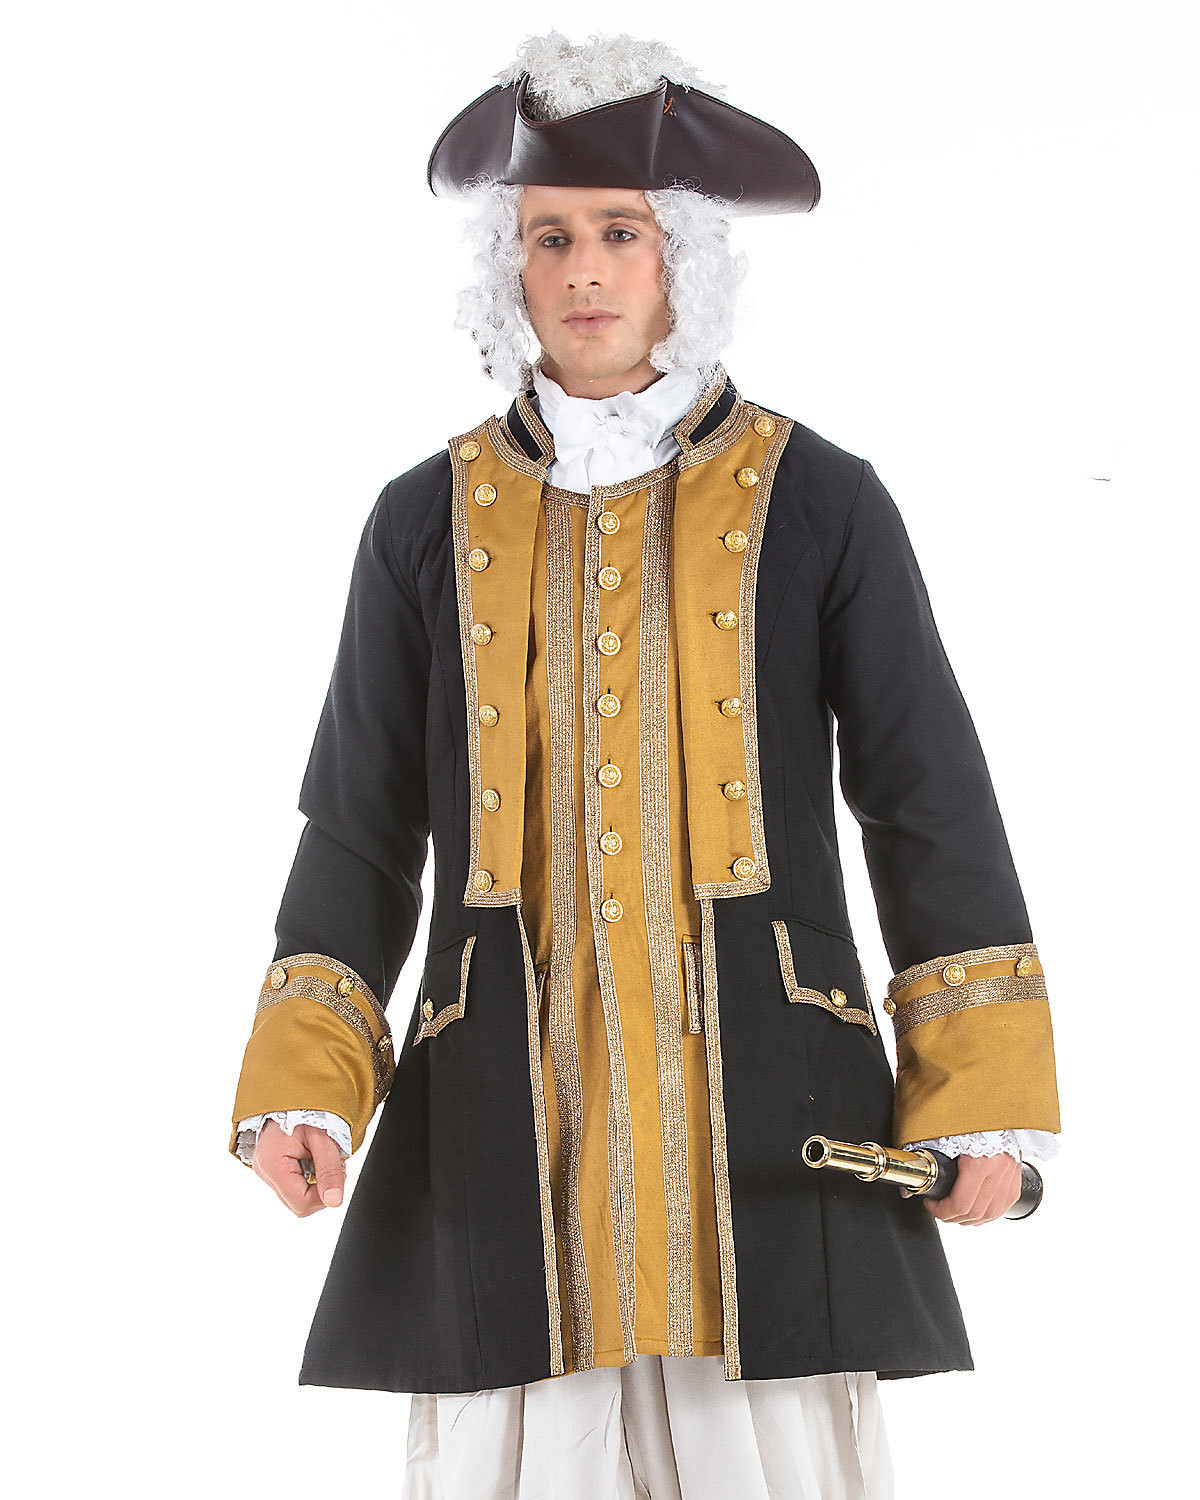 Norrington Commodore Coat